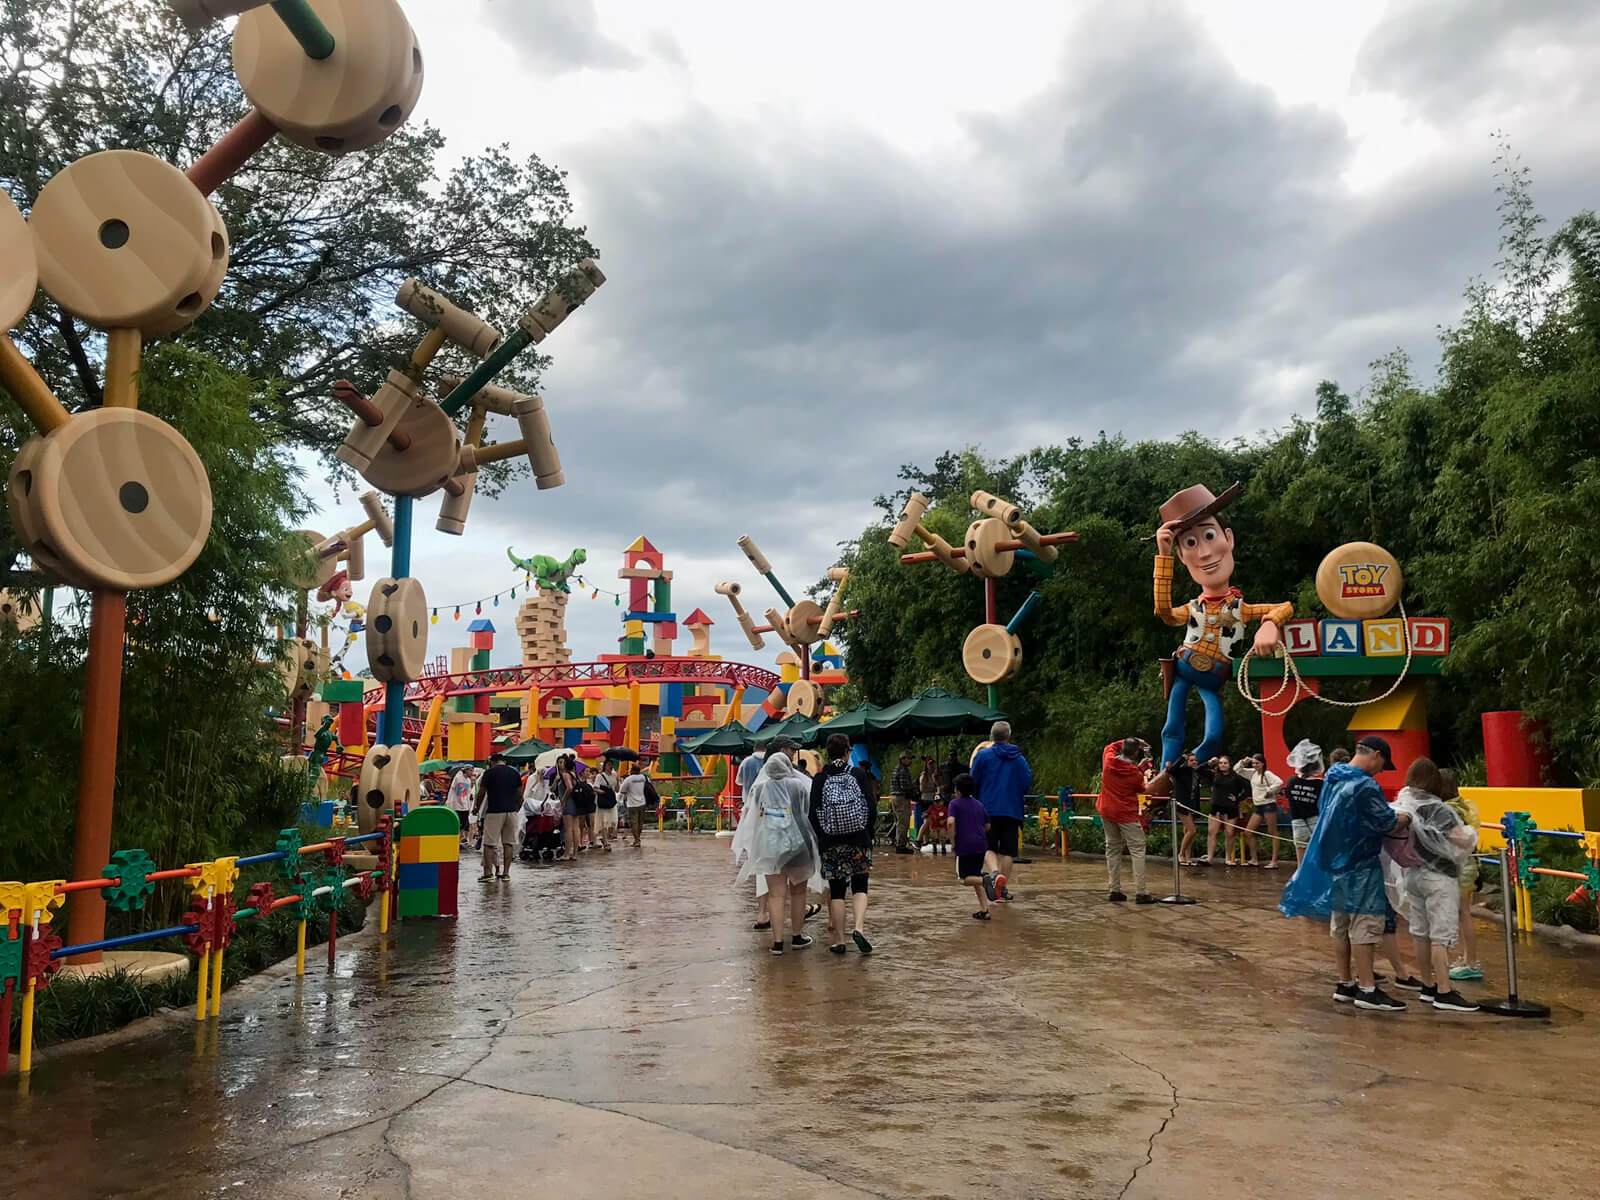 The entrance to an area of a theme park, with statues resembling life-size toys at the edges of the path. All the statues are colourful or resemble wood. The path is very wet and the sky is cloudy.